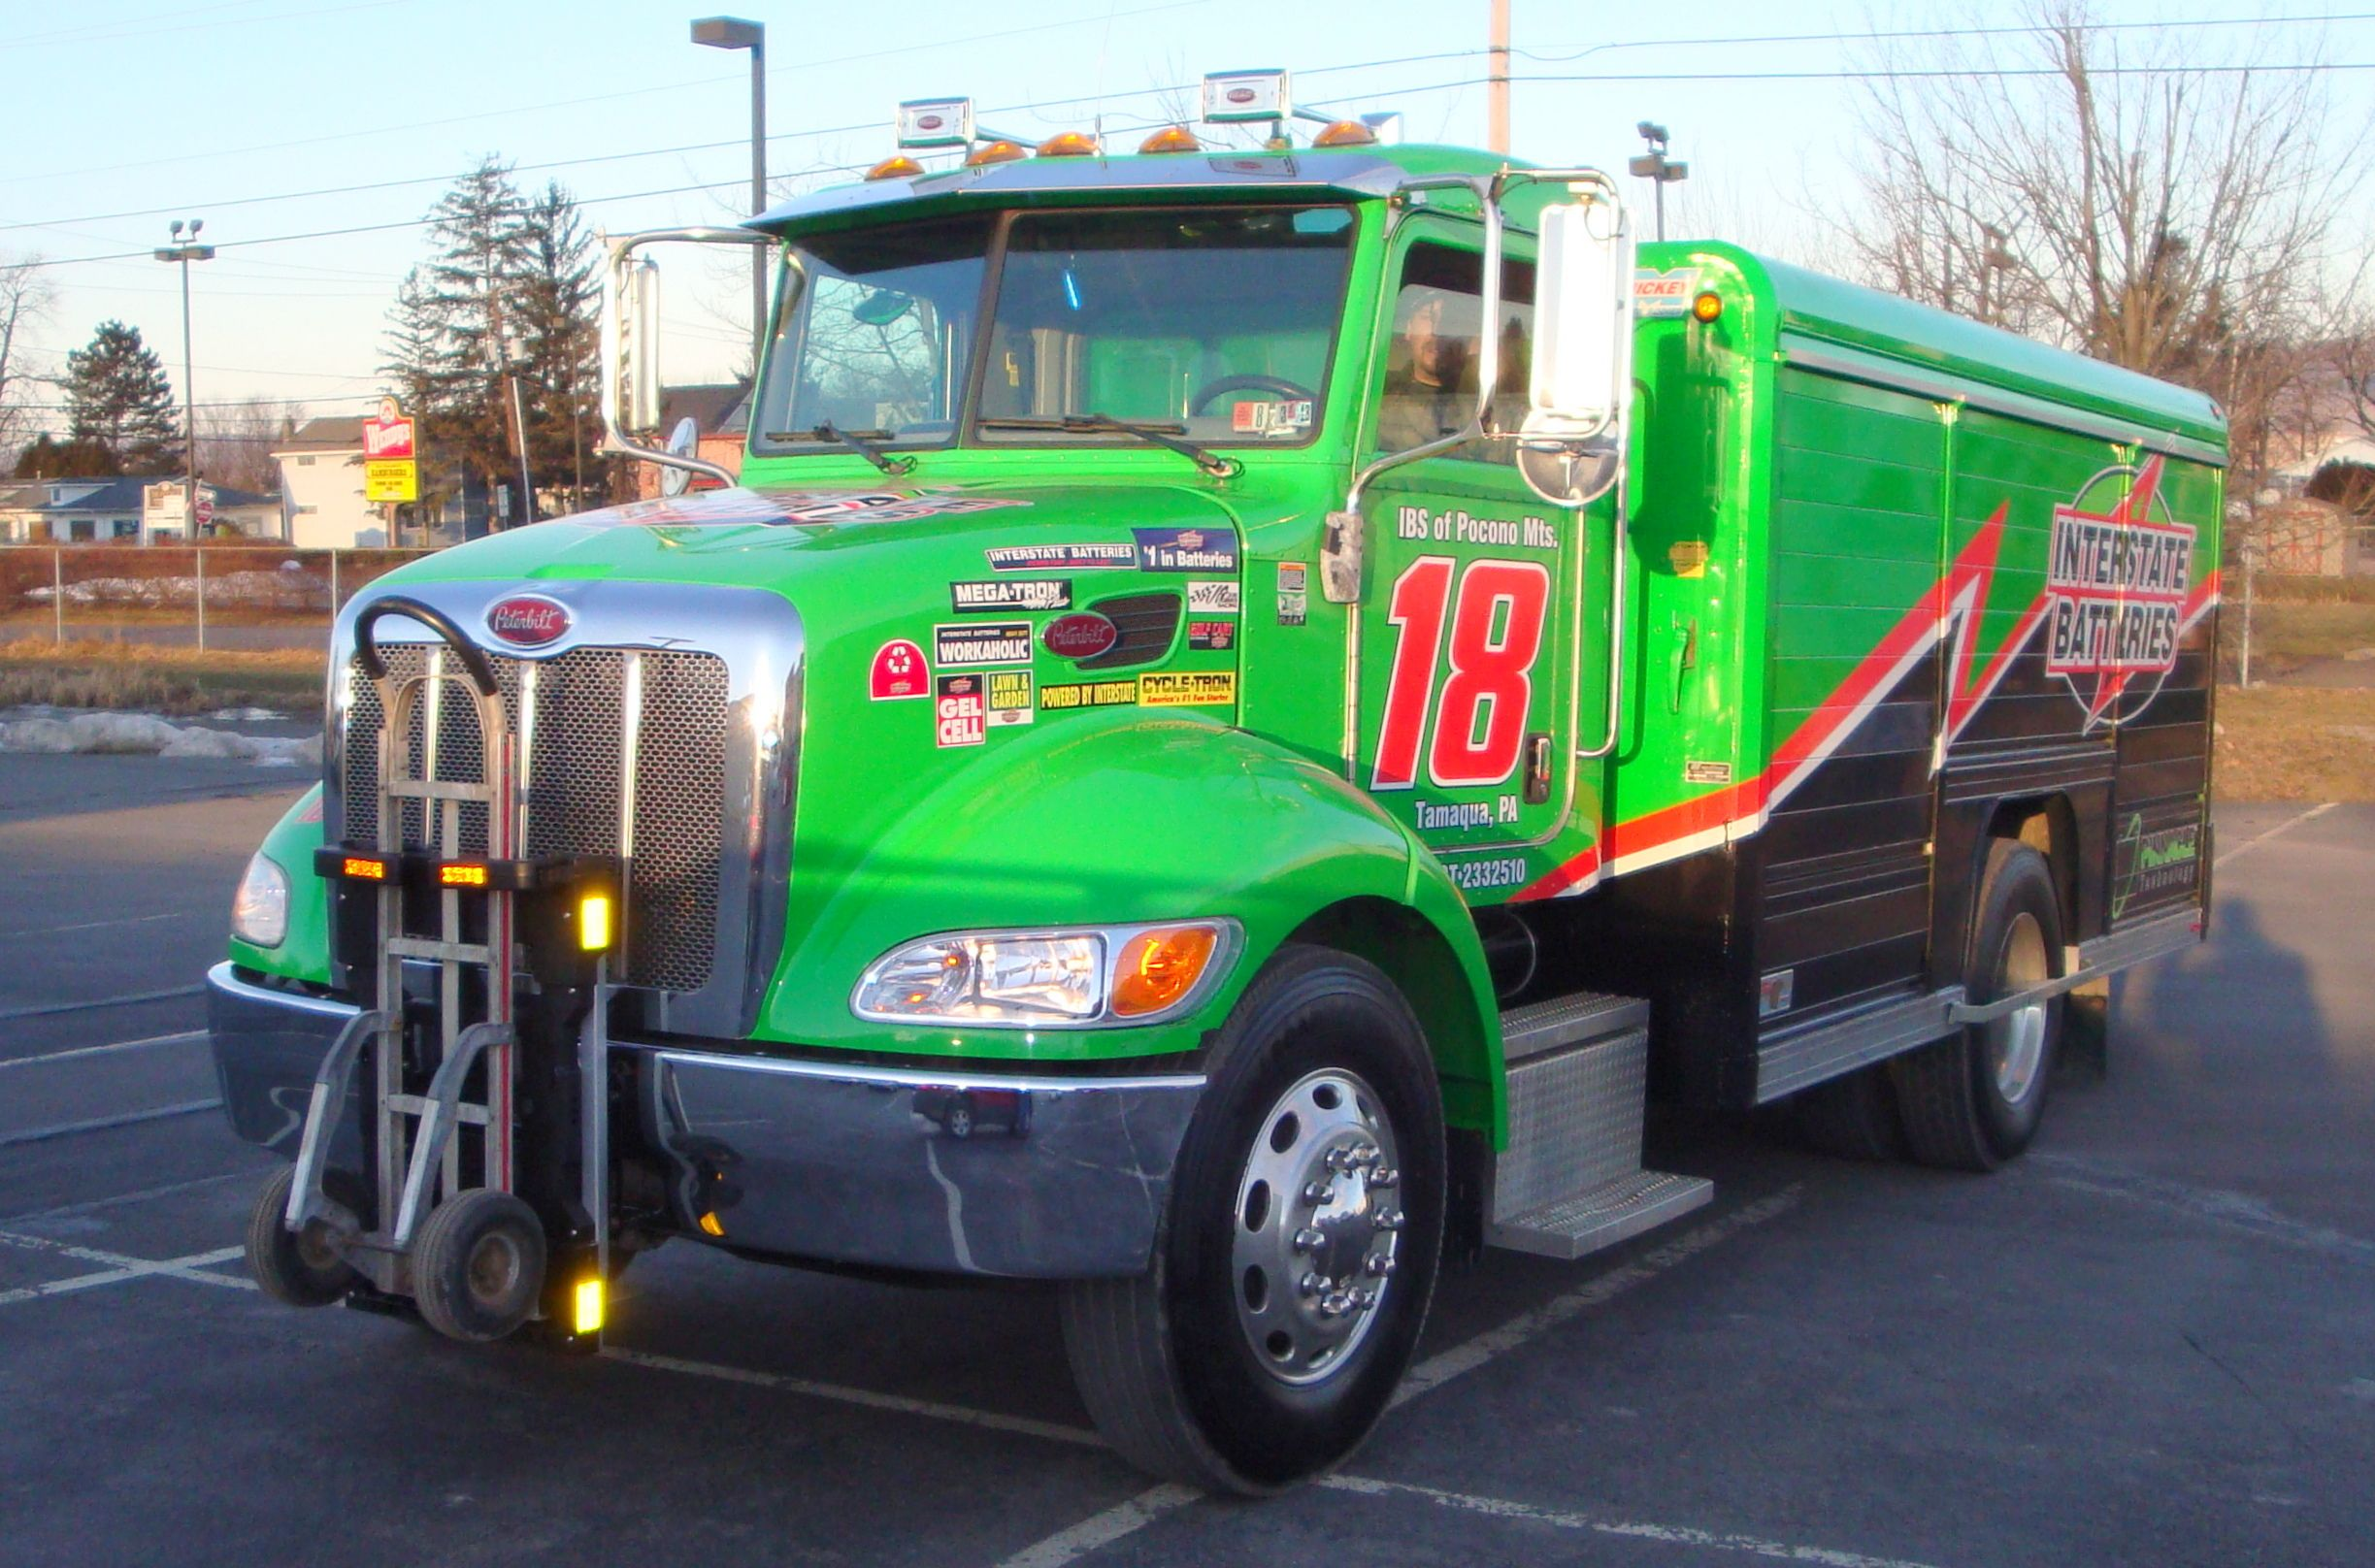 Peterbilt 335 Interstate Batteries Route Delivery Truck With Mickey Truck Bodies Battery Side Loader And Hts Systems Patent Hand Trucks Trucks Truck Transport